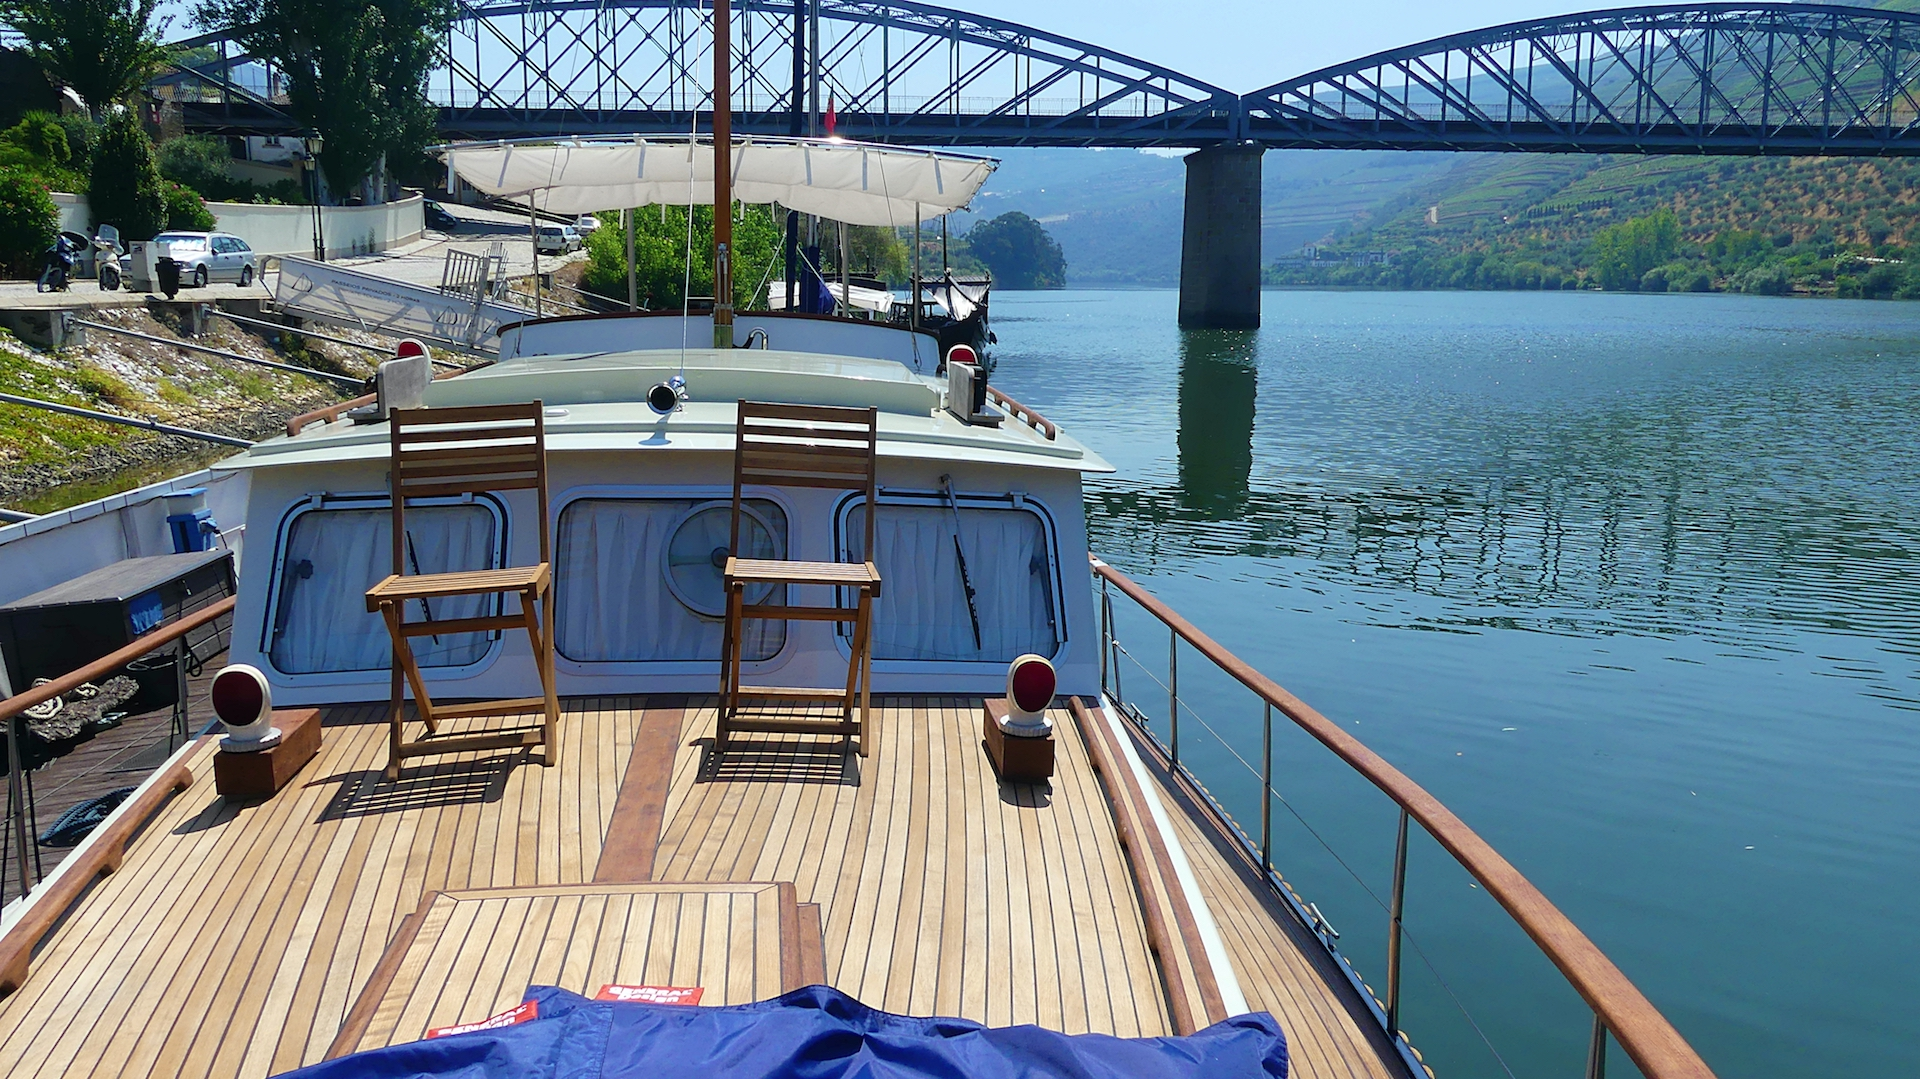 Explore the region of the Douro Valley by boat